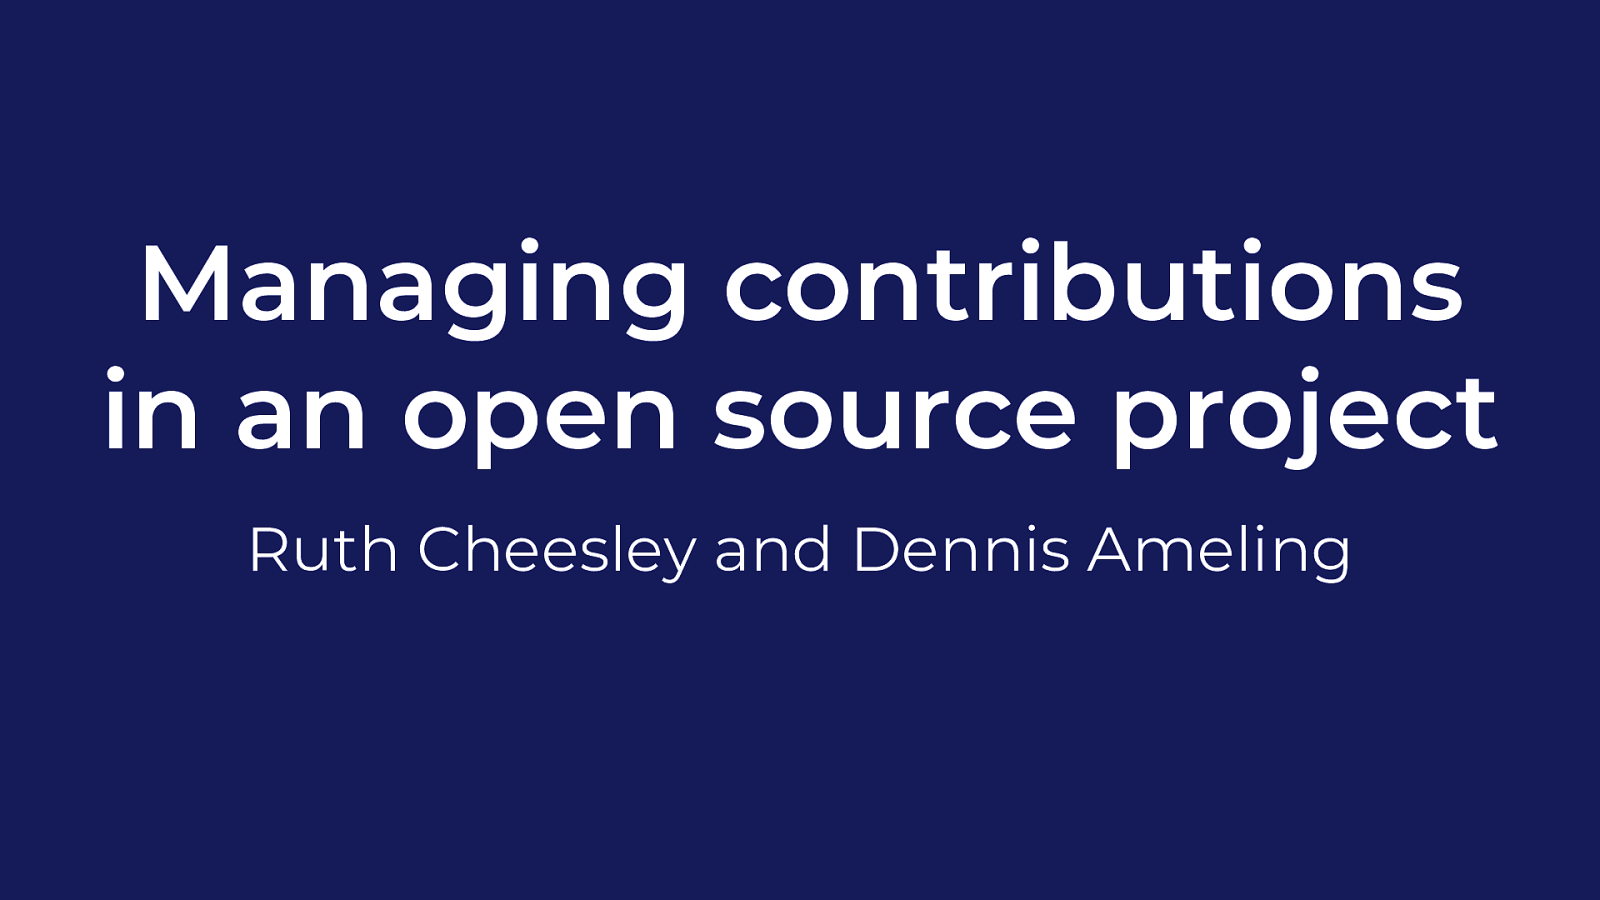 Managing contributions in an open source project